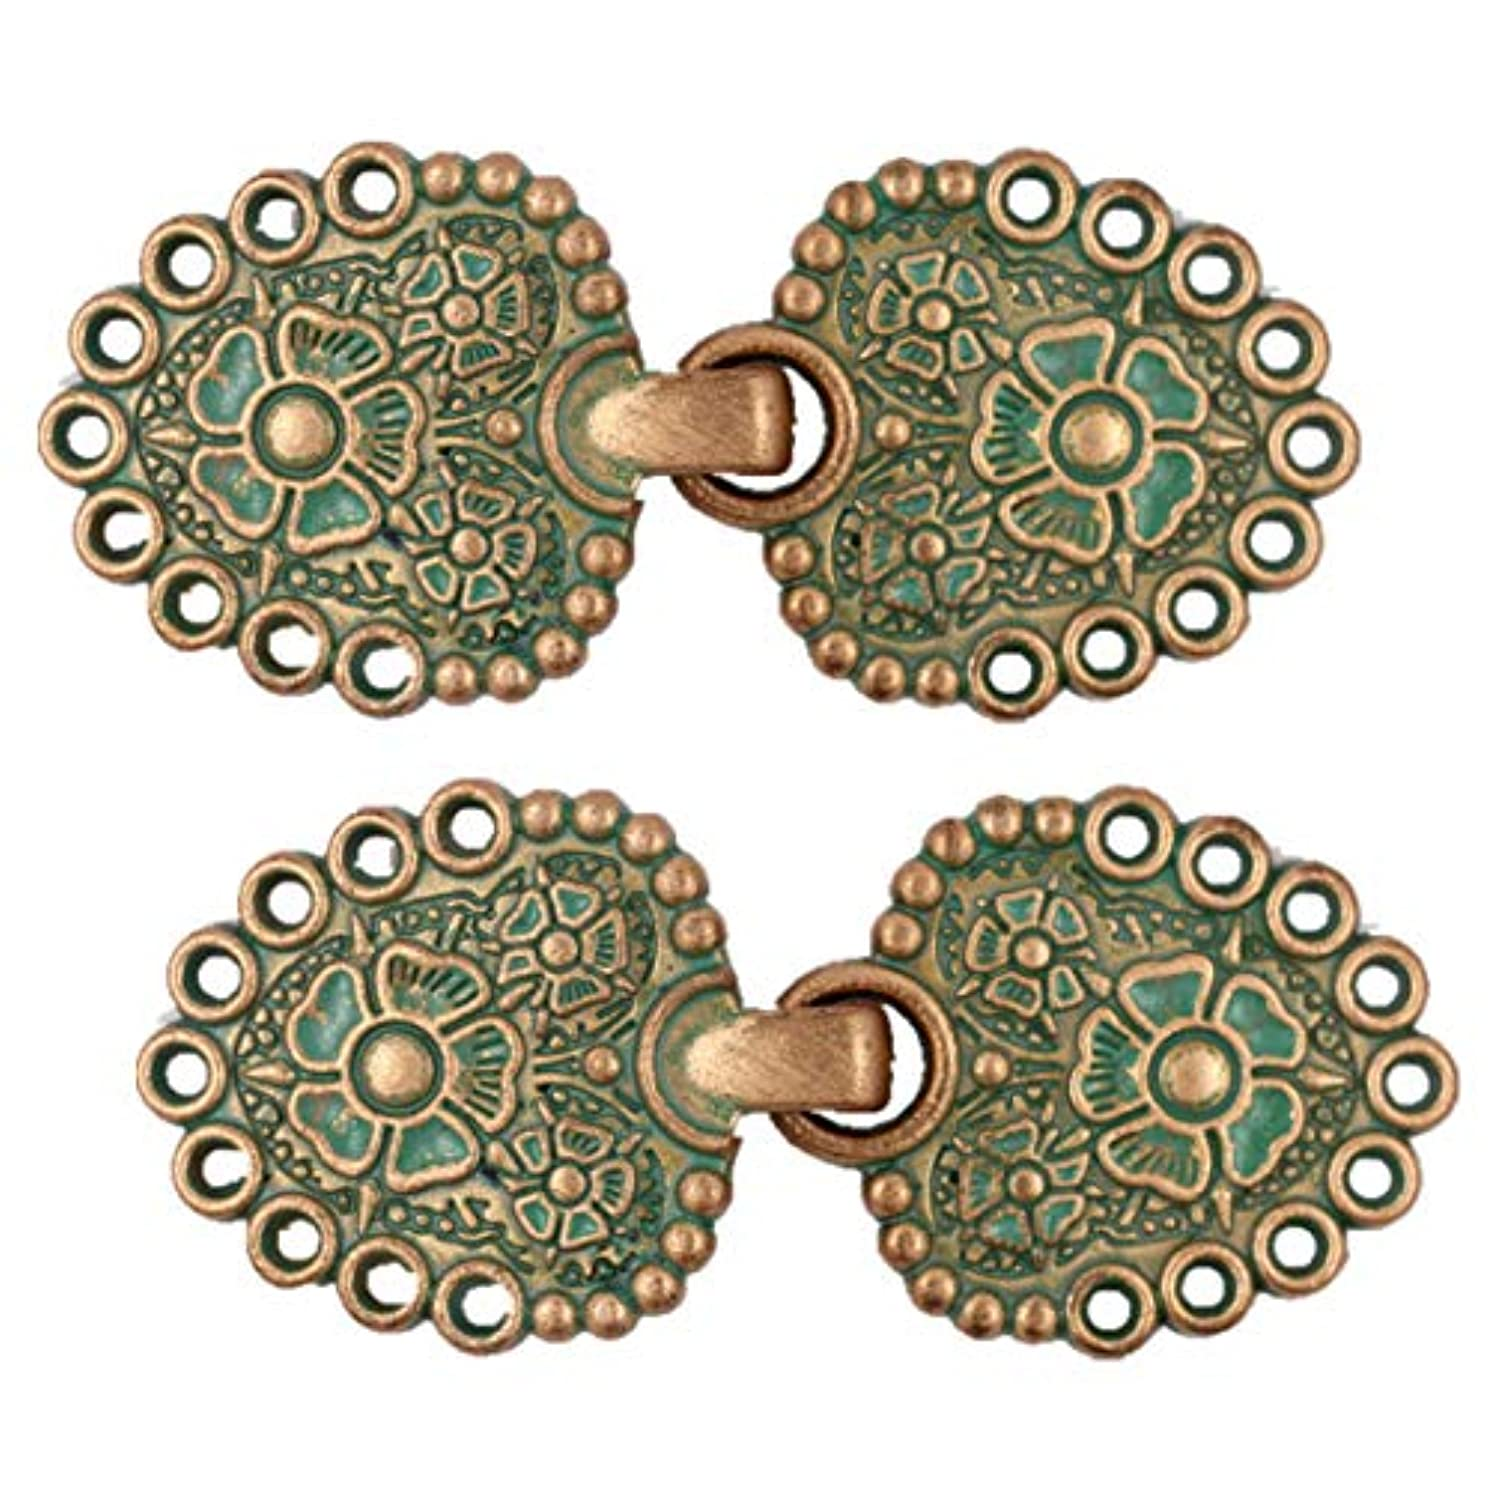 Bezelry Romantic Bouquet Hook and Eye Cloak Clasp Fasteners Pack of 4 Pairs 62mm x 25mm Fastened. (Copper Green)